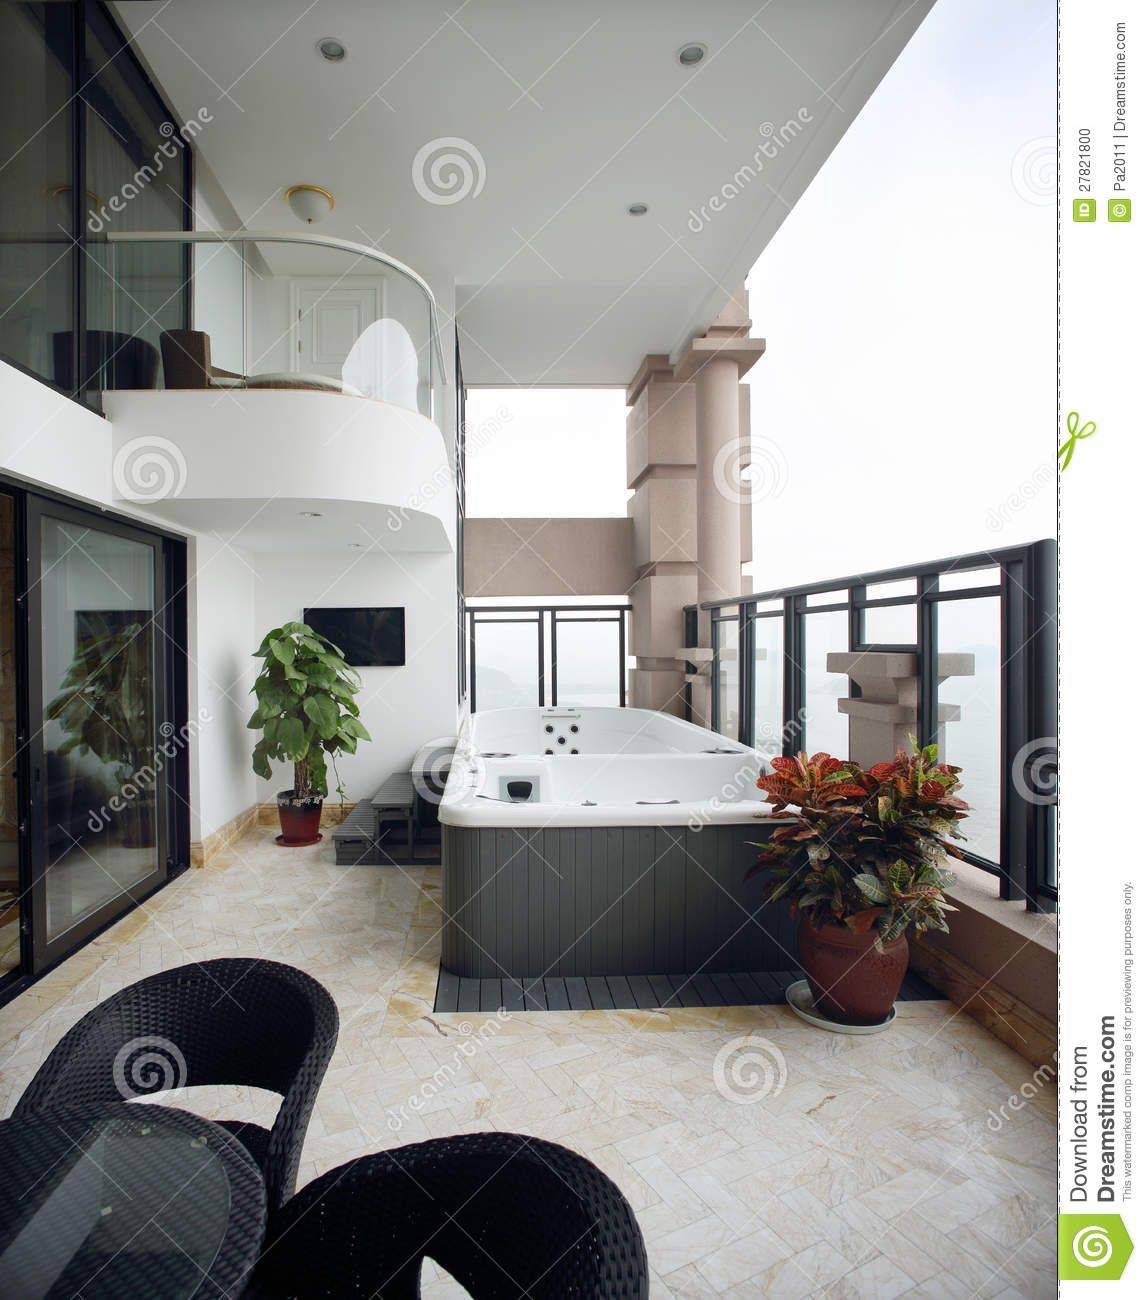 conception int rieure moderne salle de bains photo stock image 27821800. Black Bedroom Furniture Sets. Home Design Ideas